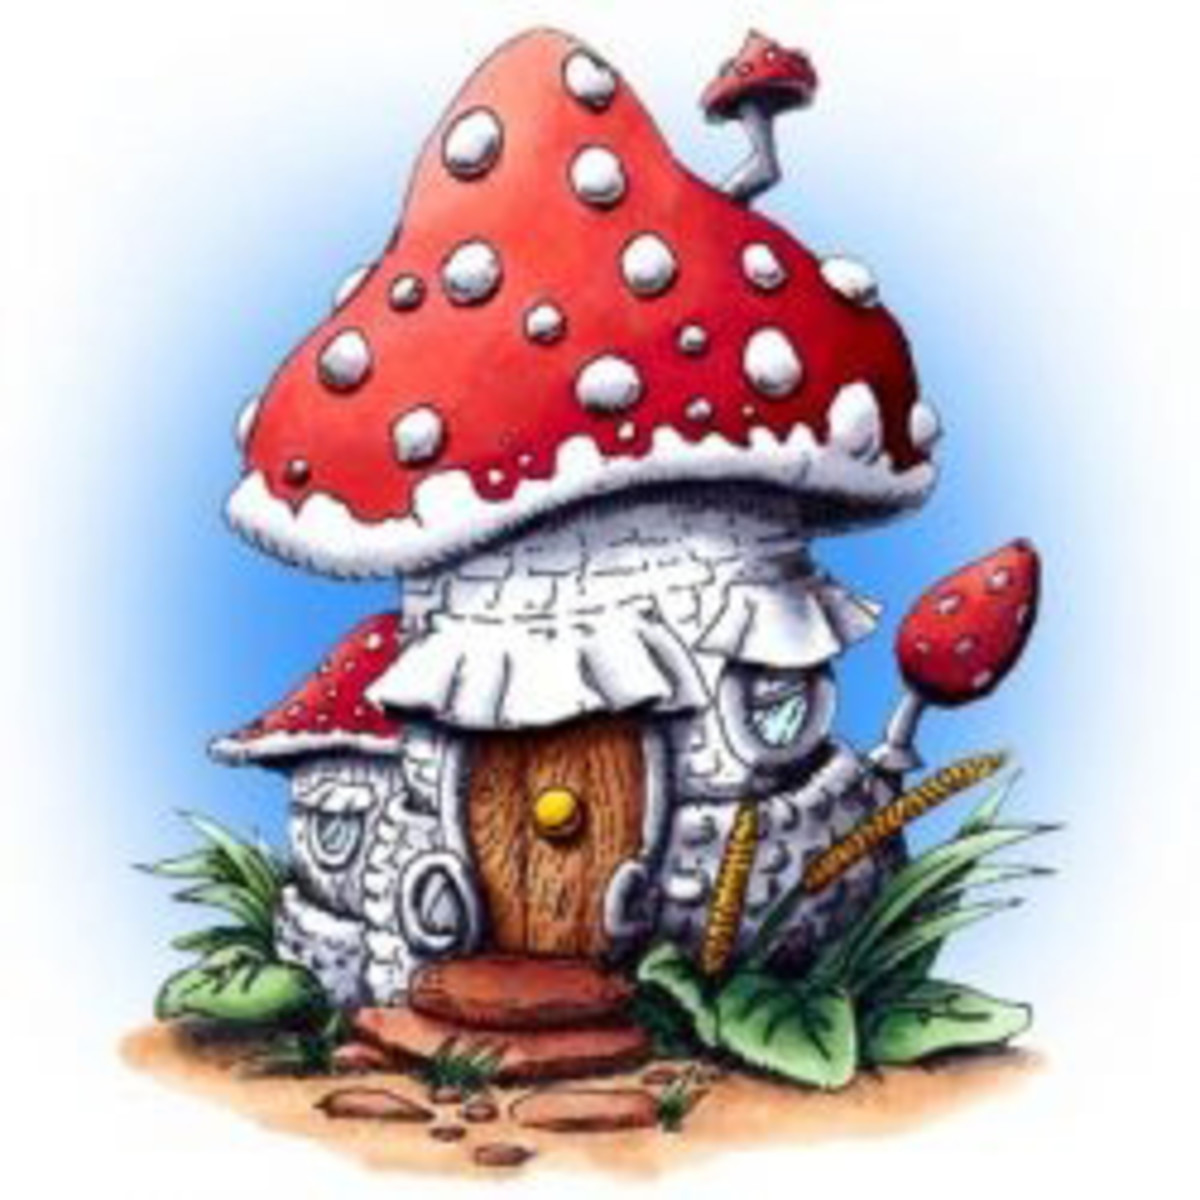 And some fairies and other little folk even make the toadstool their home